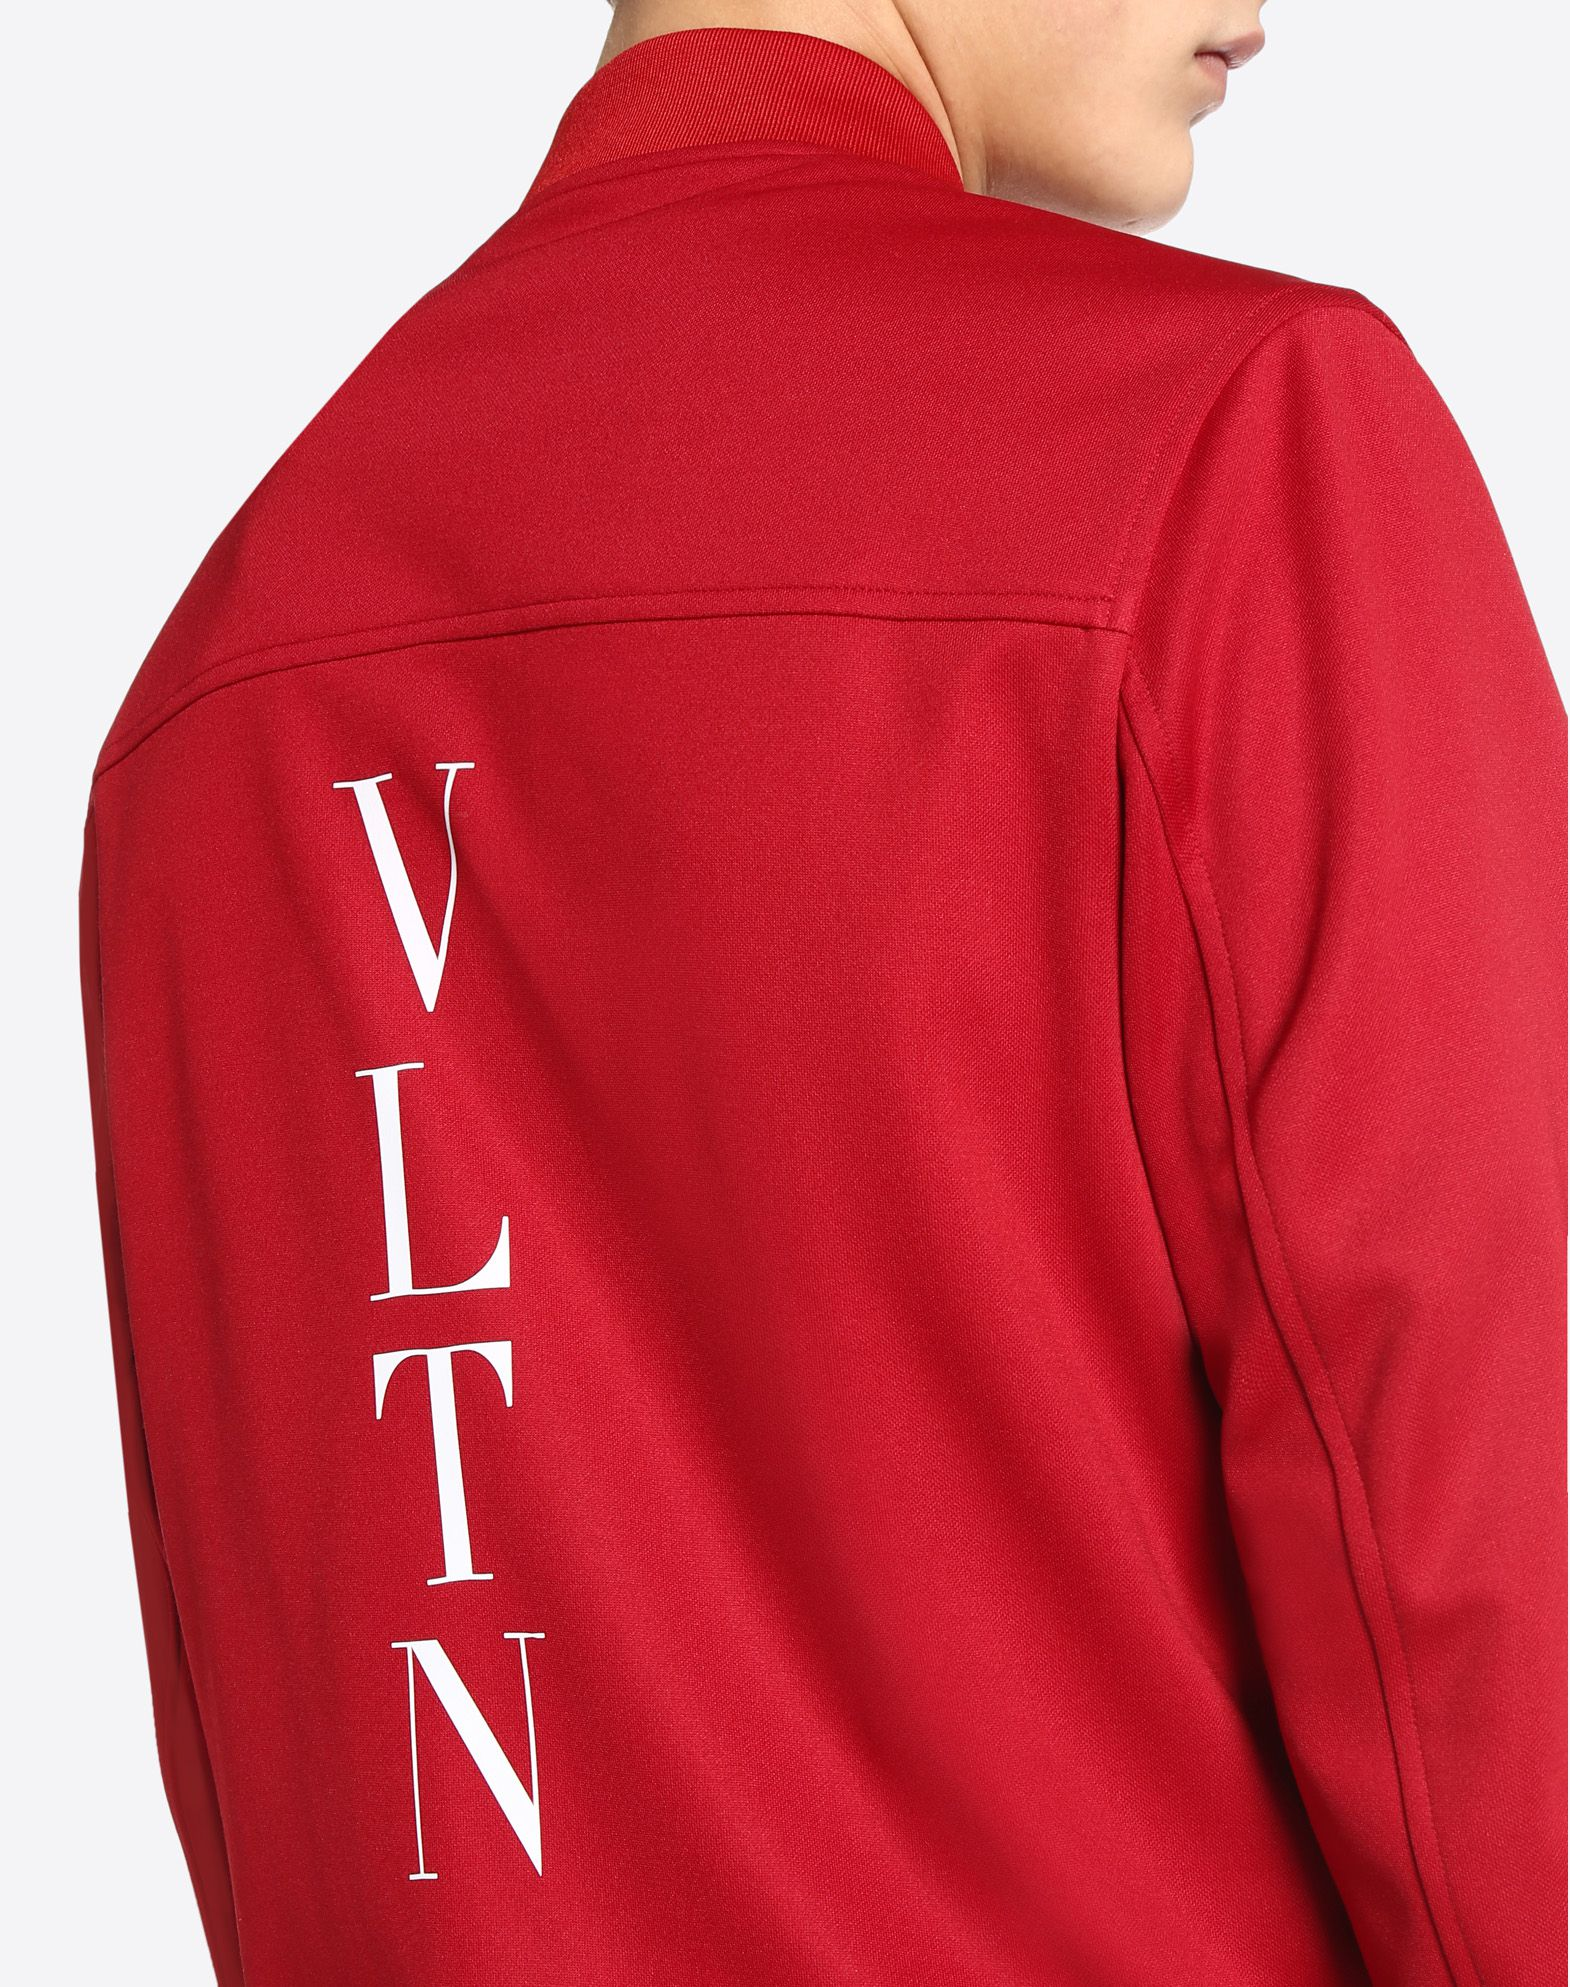 VALENTINO UOMO Vertical stripe inlays sweatshirt with VLTN logo JACKET U a